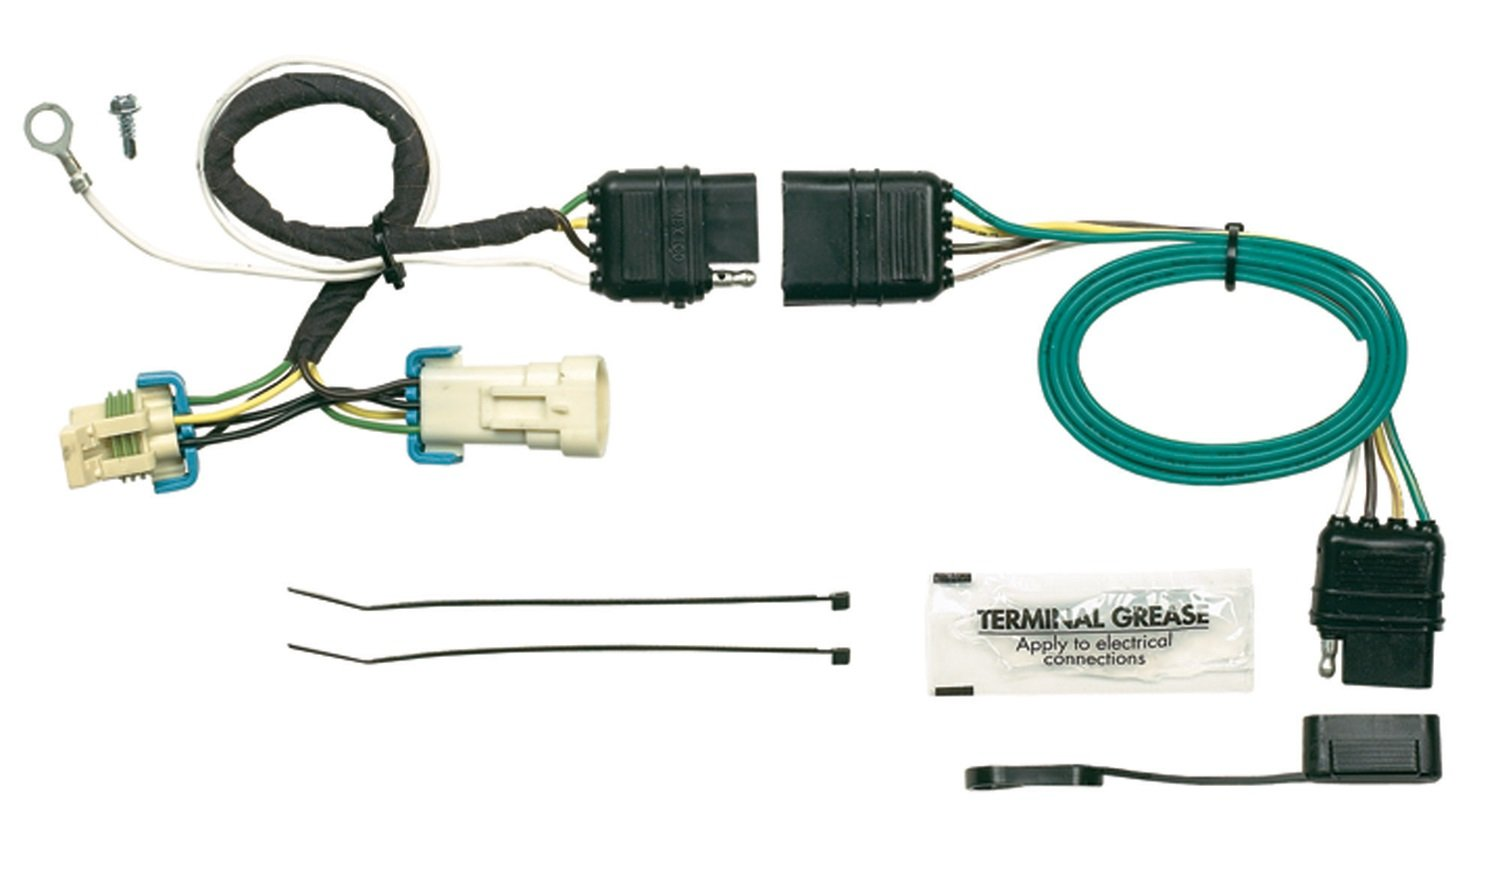 618X6OJbTkL._SL1500_ amazon com hopkins 41135 plug in simple vehicle wiring kit plug and play trailer wiring harness at sewacar.co